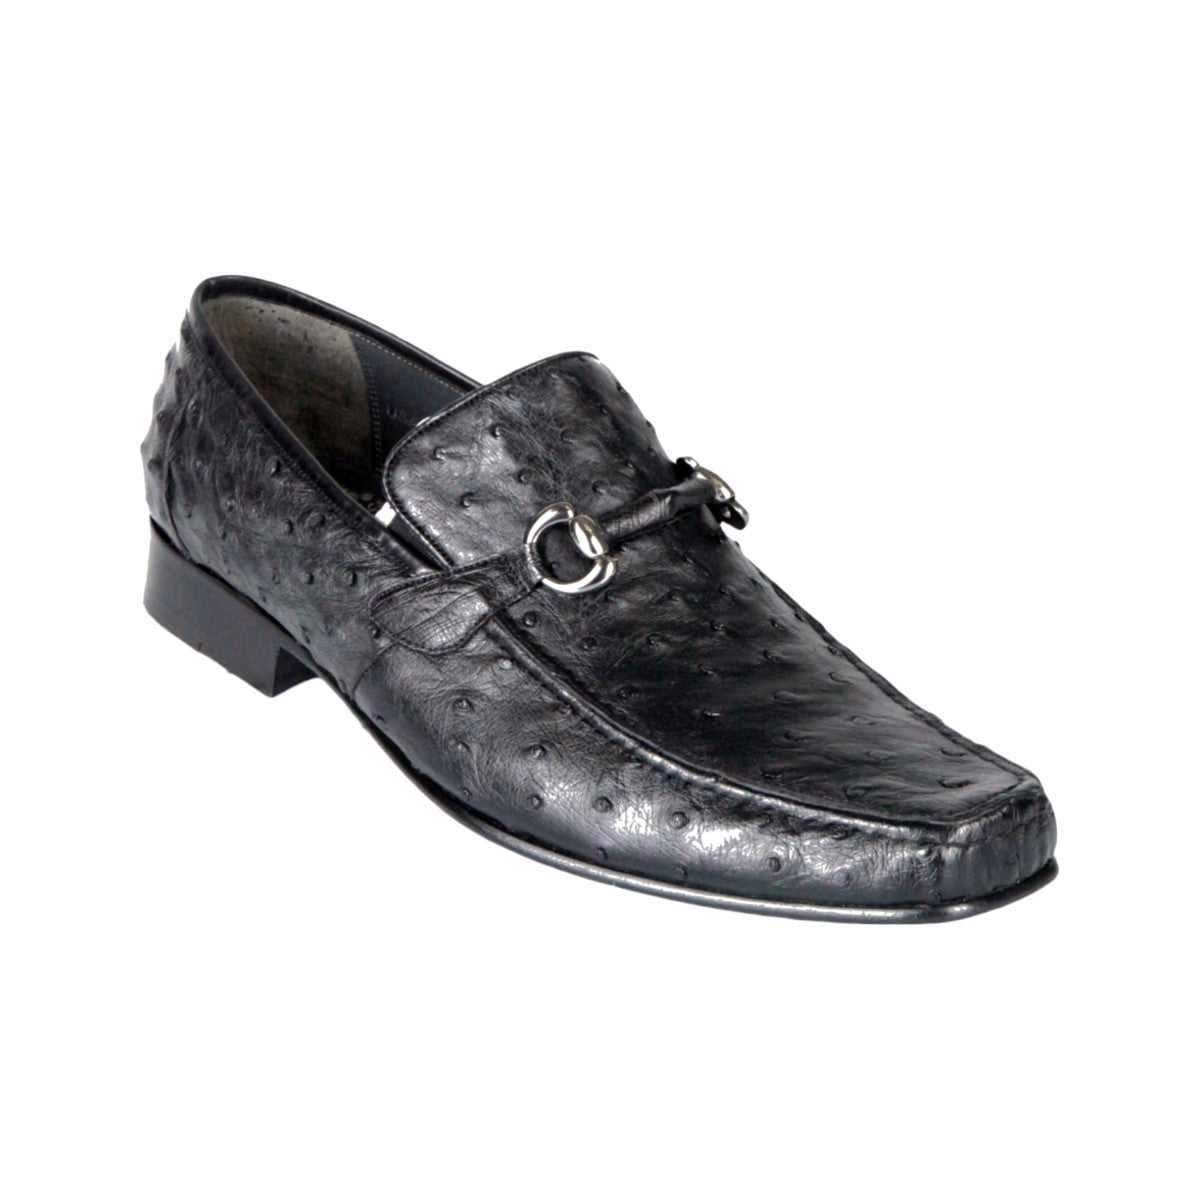 Los Altos Boots Dress Shoes Ostrich